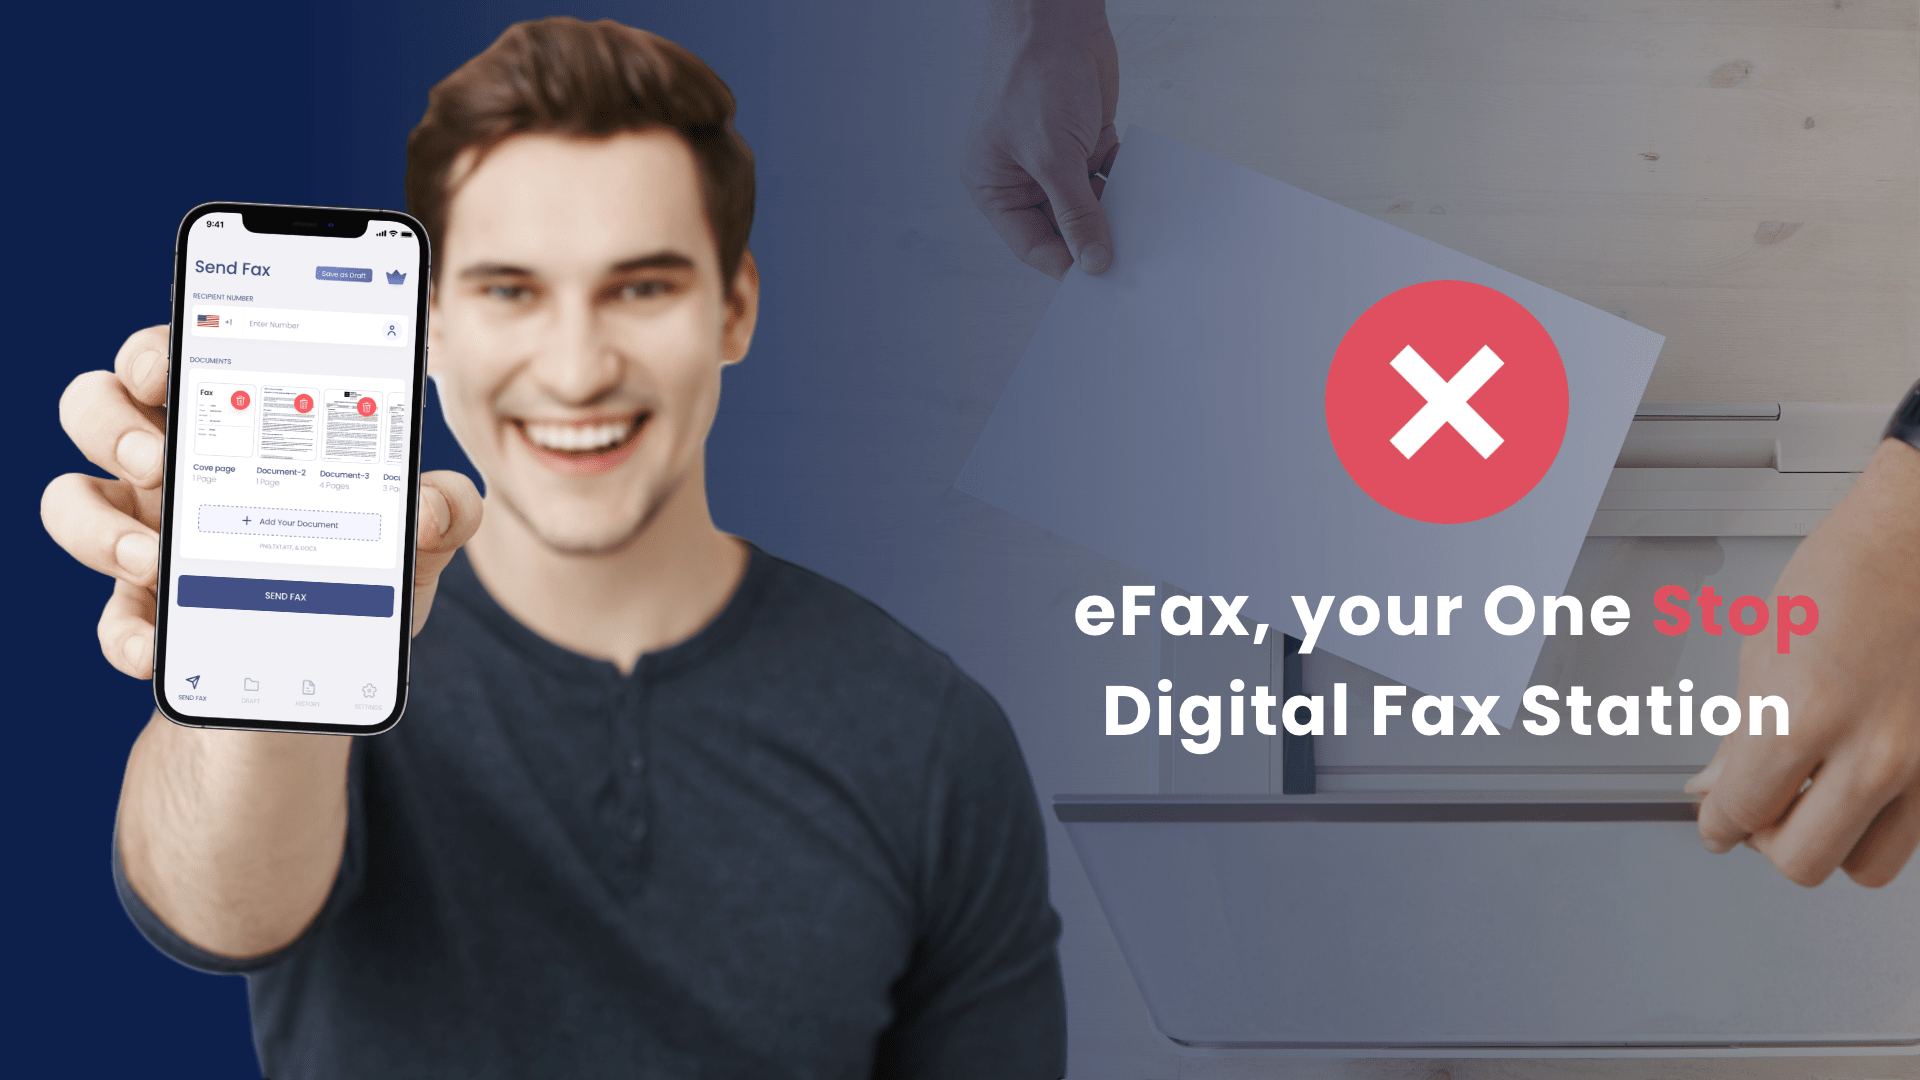 One-stop app solution for sending fax